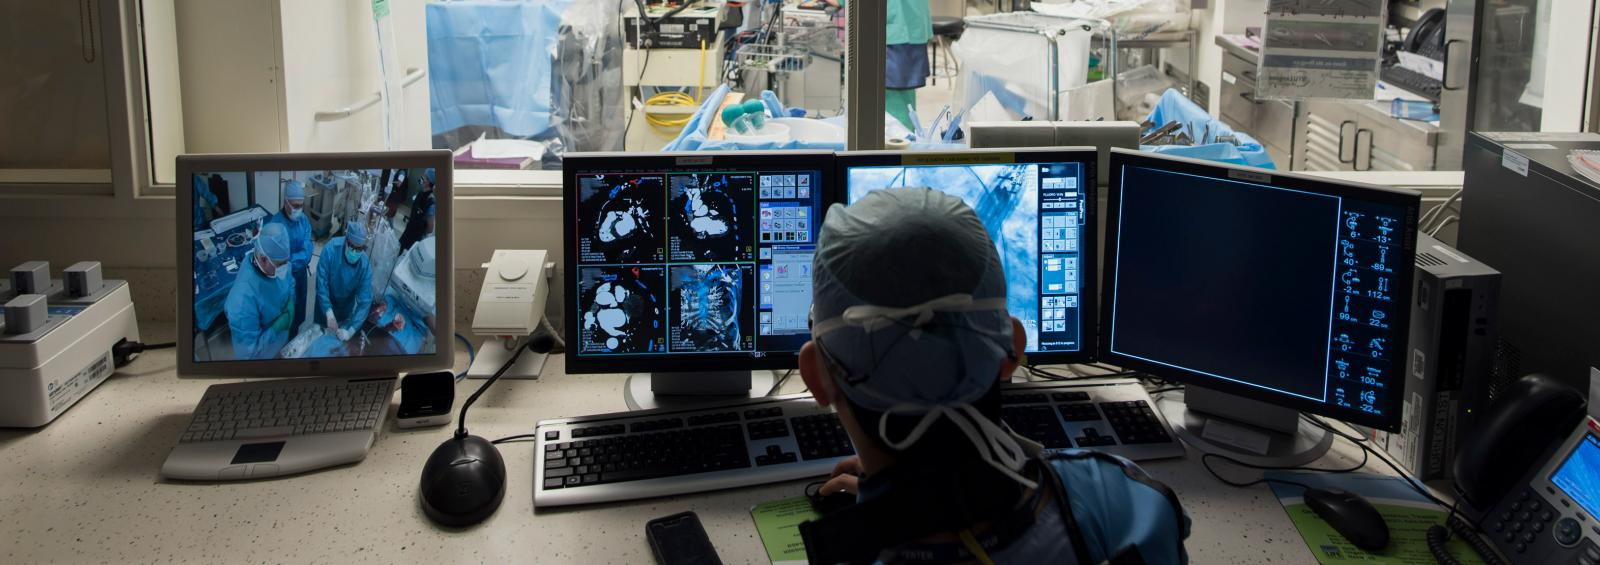 Thoracic Surgeon Observes Operating Room